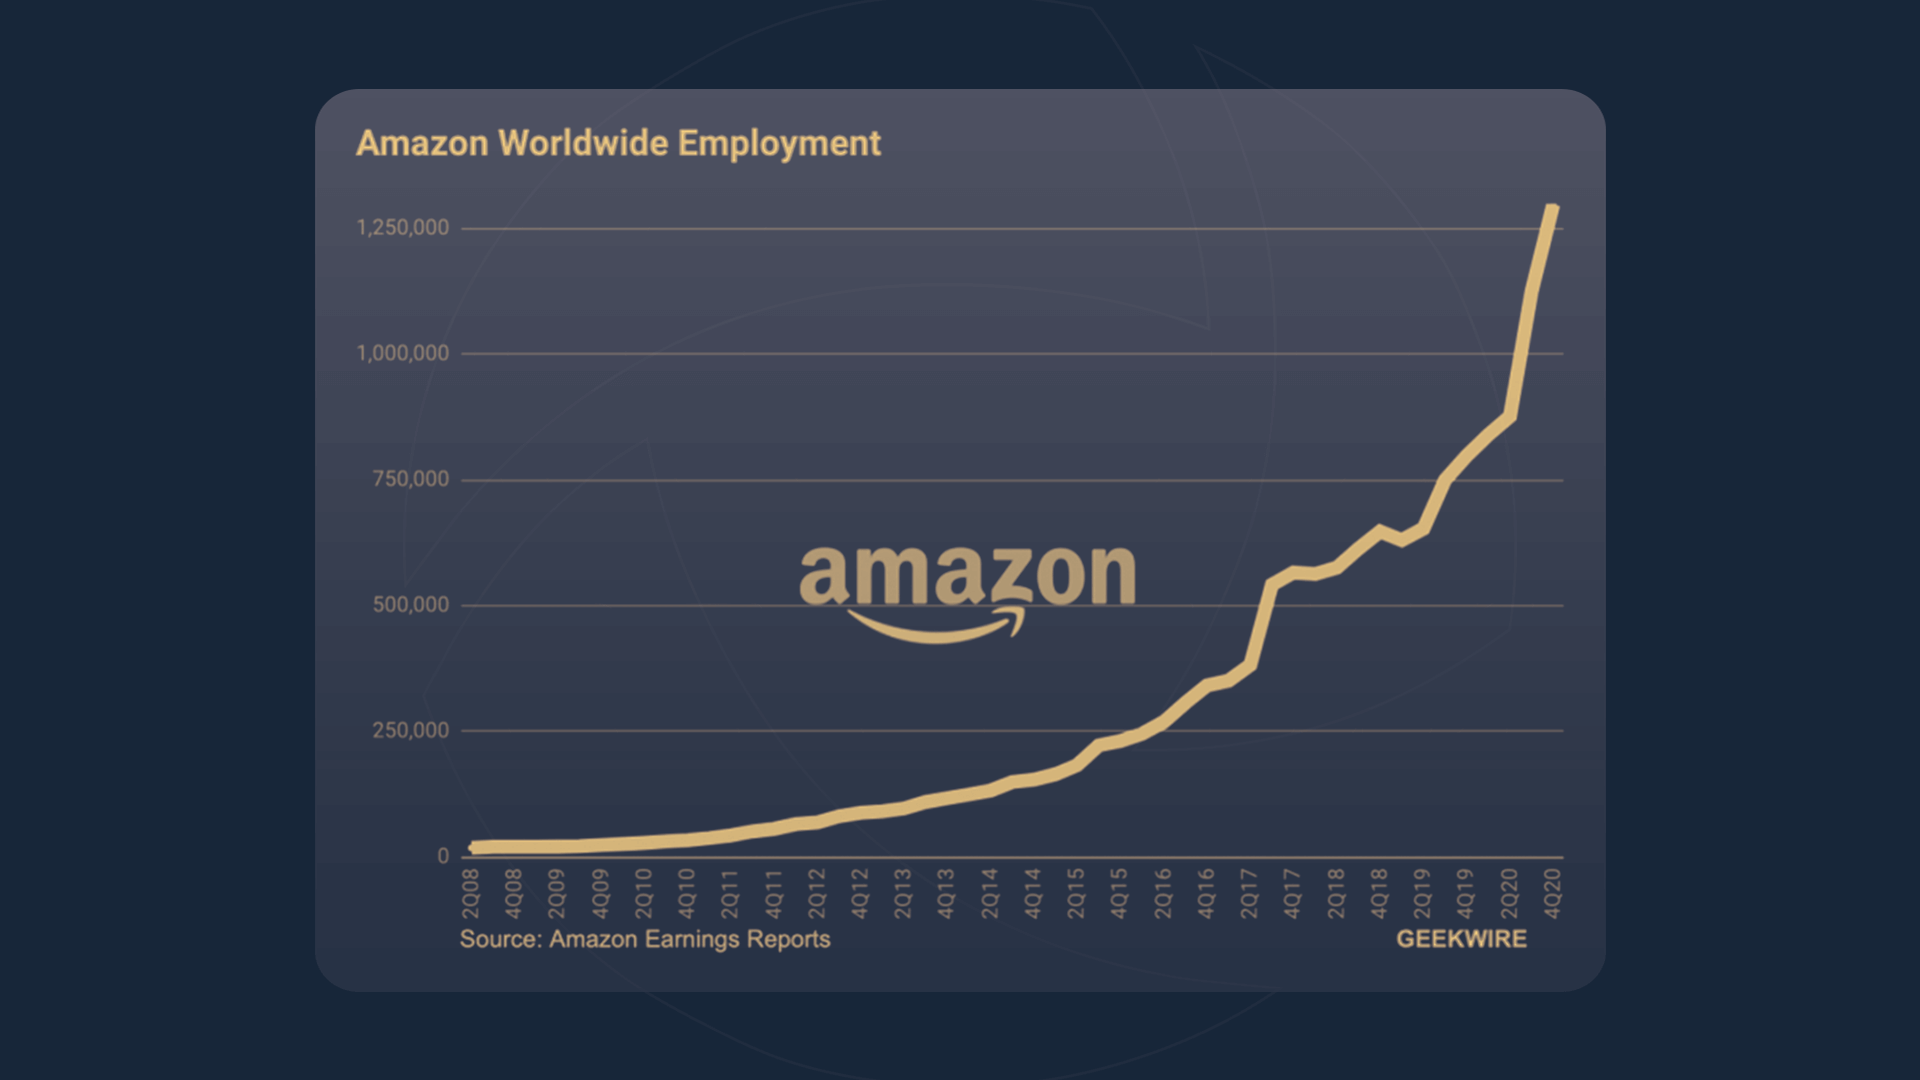 Graph showing the change in Amazon employment from 2008 to the 4th quarter of 2020, rising all the way to 1,250,000.